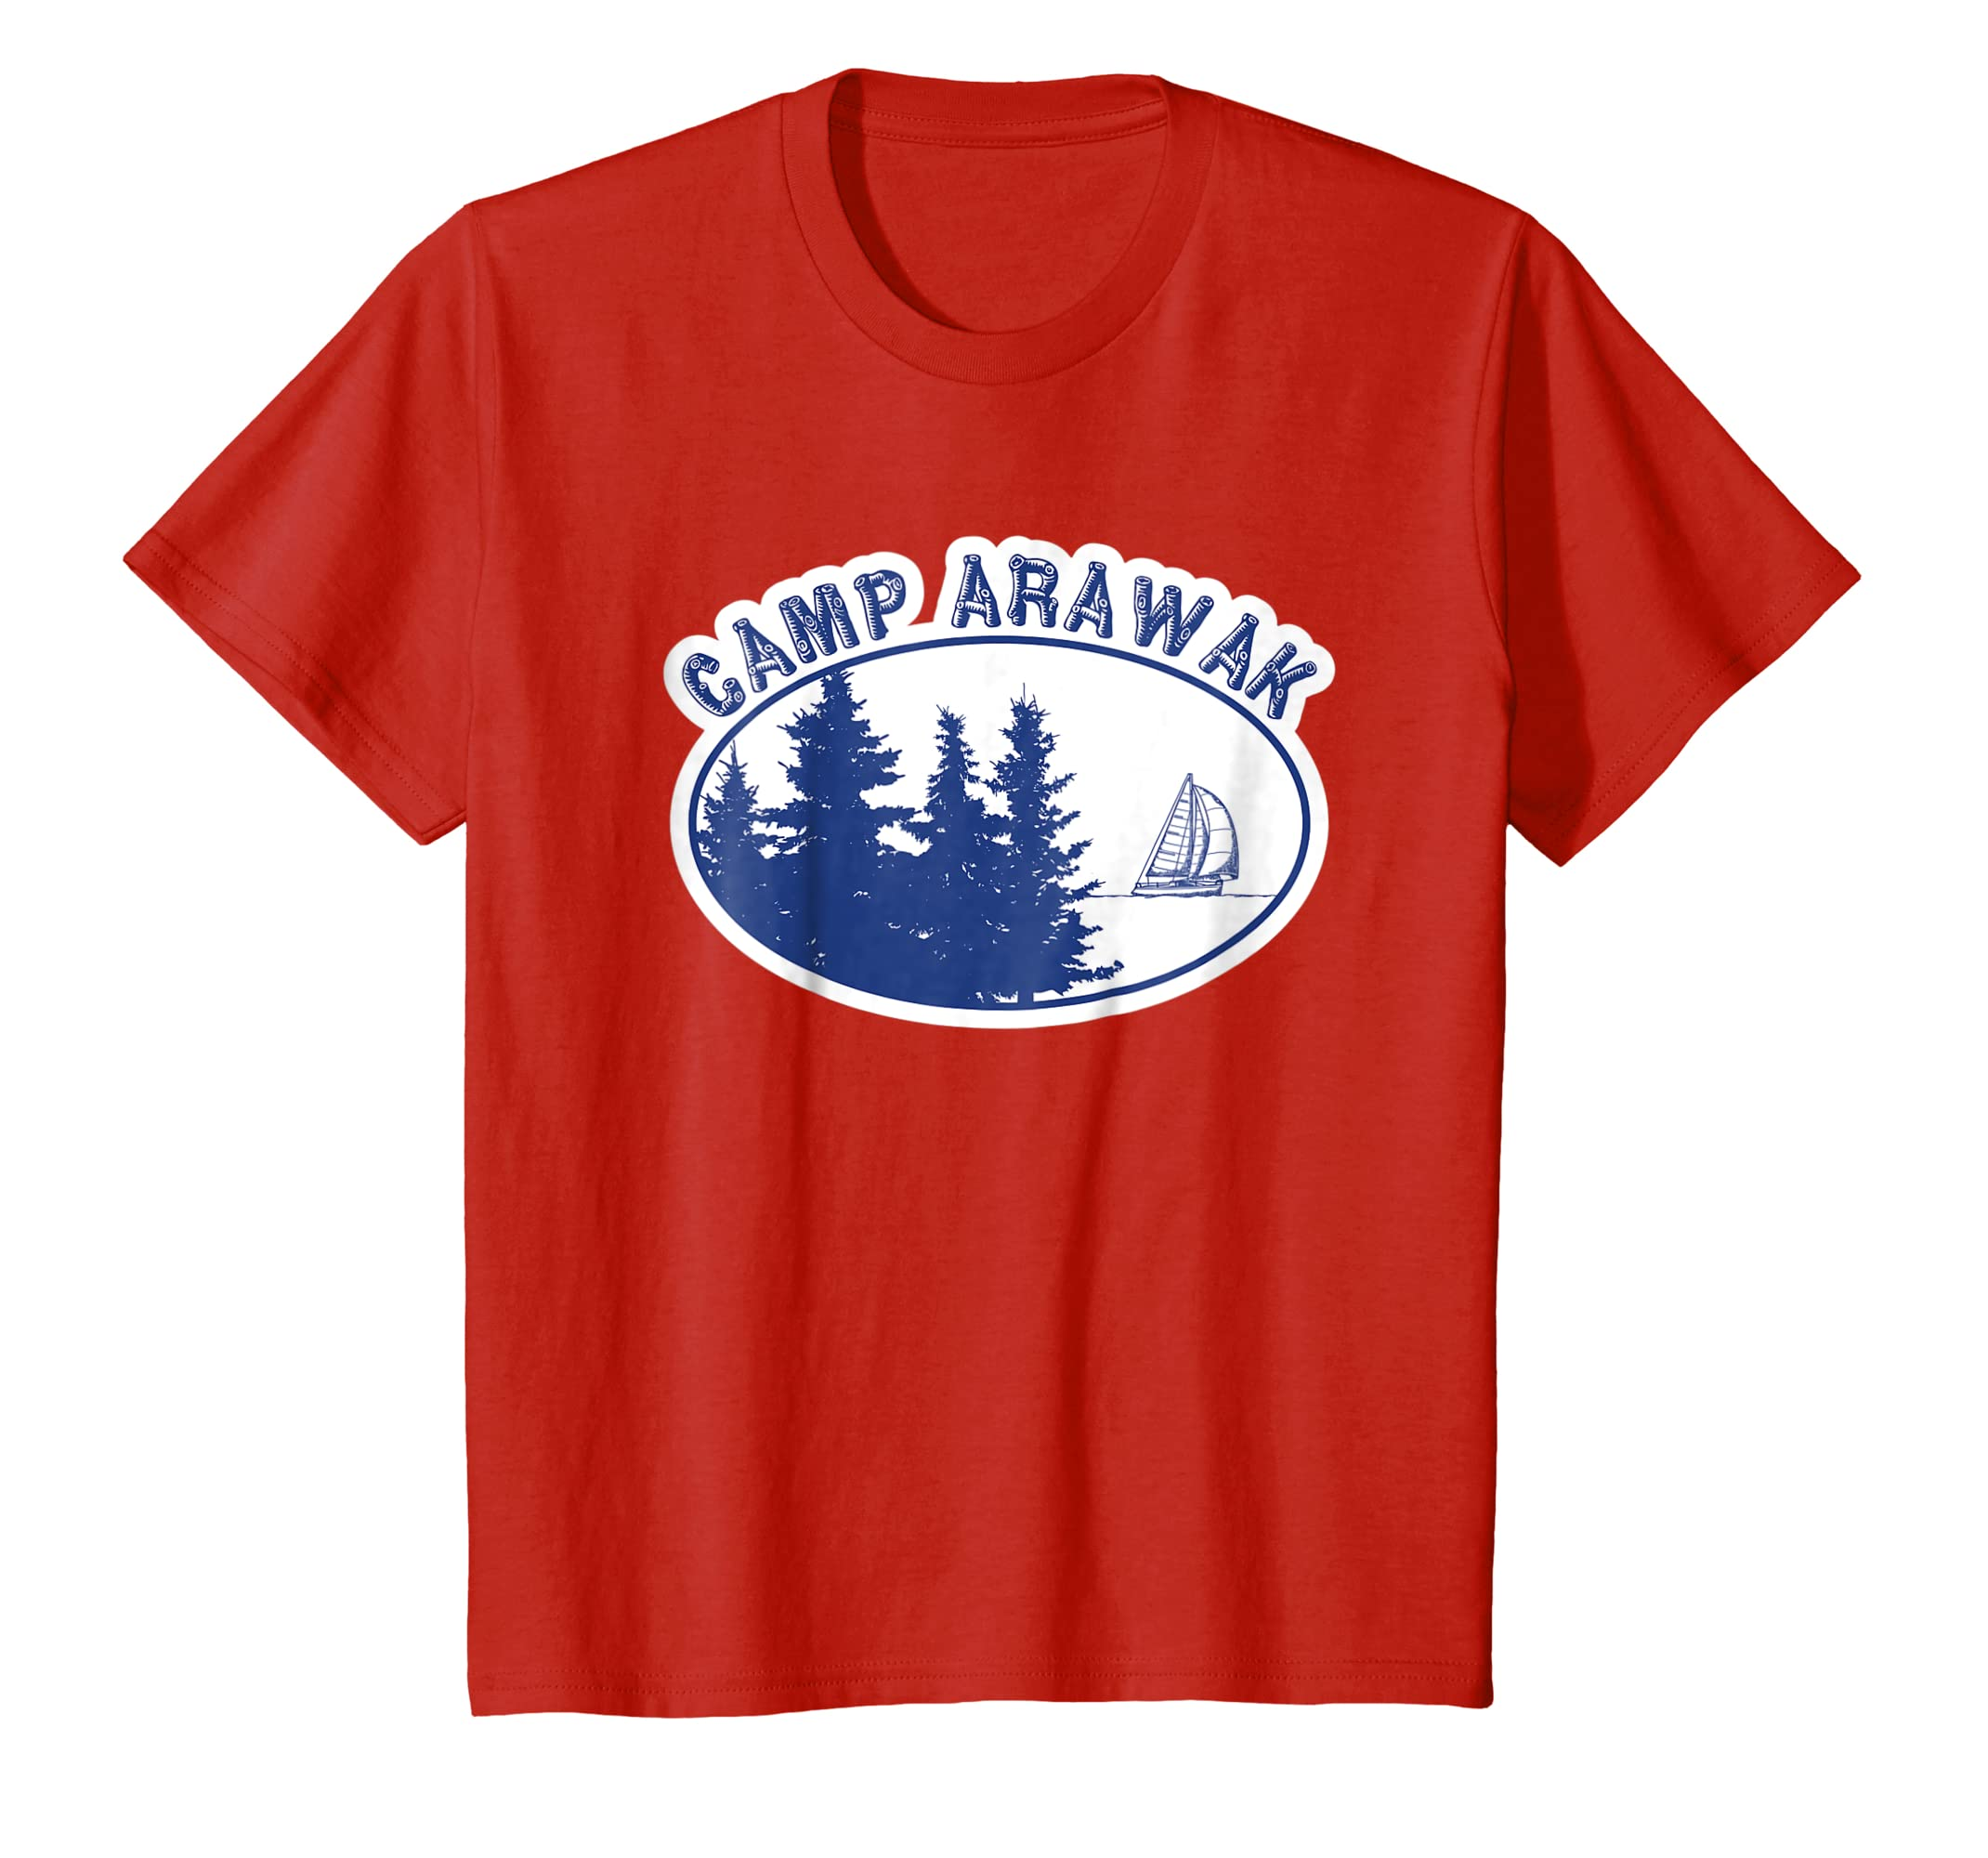 366de7c9690 Amazon.com  Camp Arawak Shirt Retro Summer Camp T-Shirt  Clothing